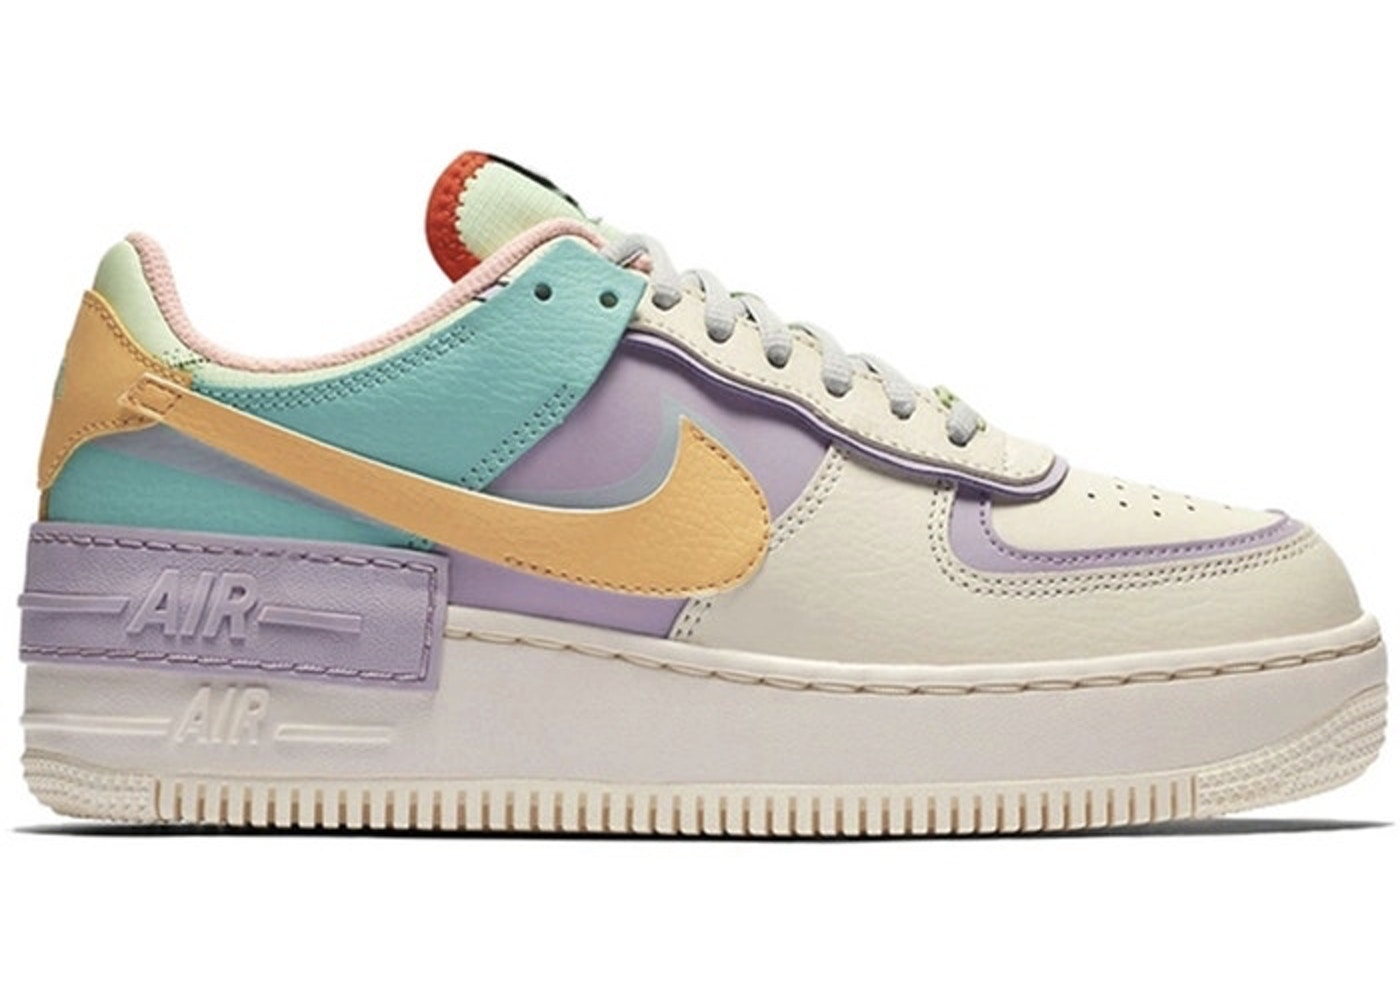 Nike Air Force 1 Shadow Pale Ivory W Hypeanalyzer If you want something that is universally appealing, the air force 1 low is here to meet your needs. nike air force 1 shadow pale ivory w